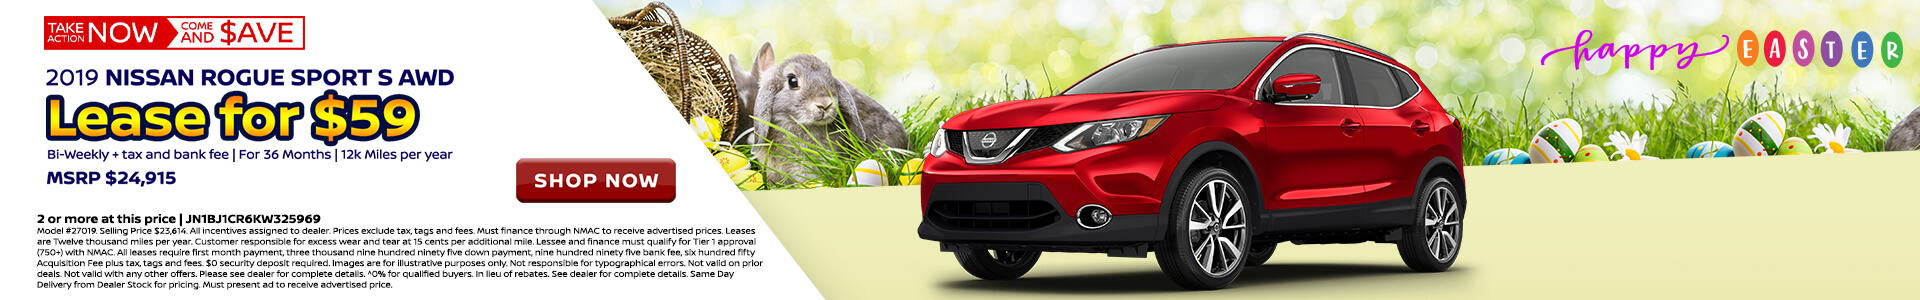 Nissan Rogue Sport $118 Lease